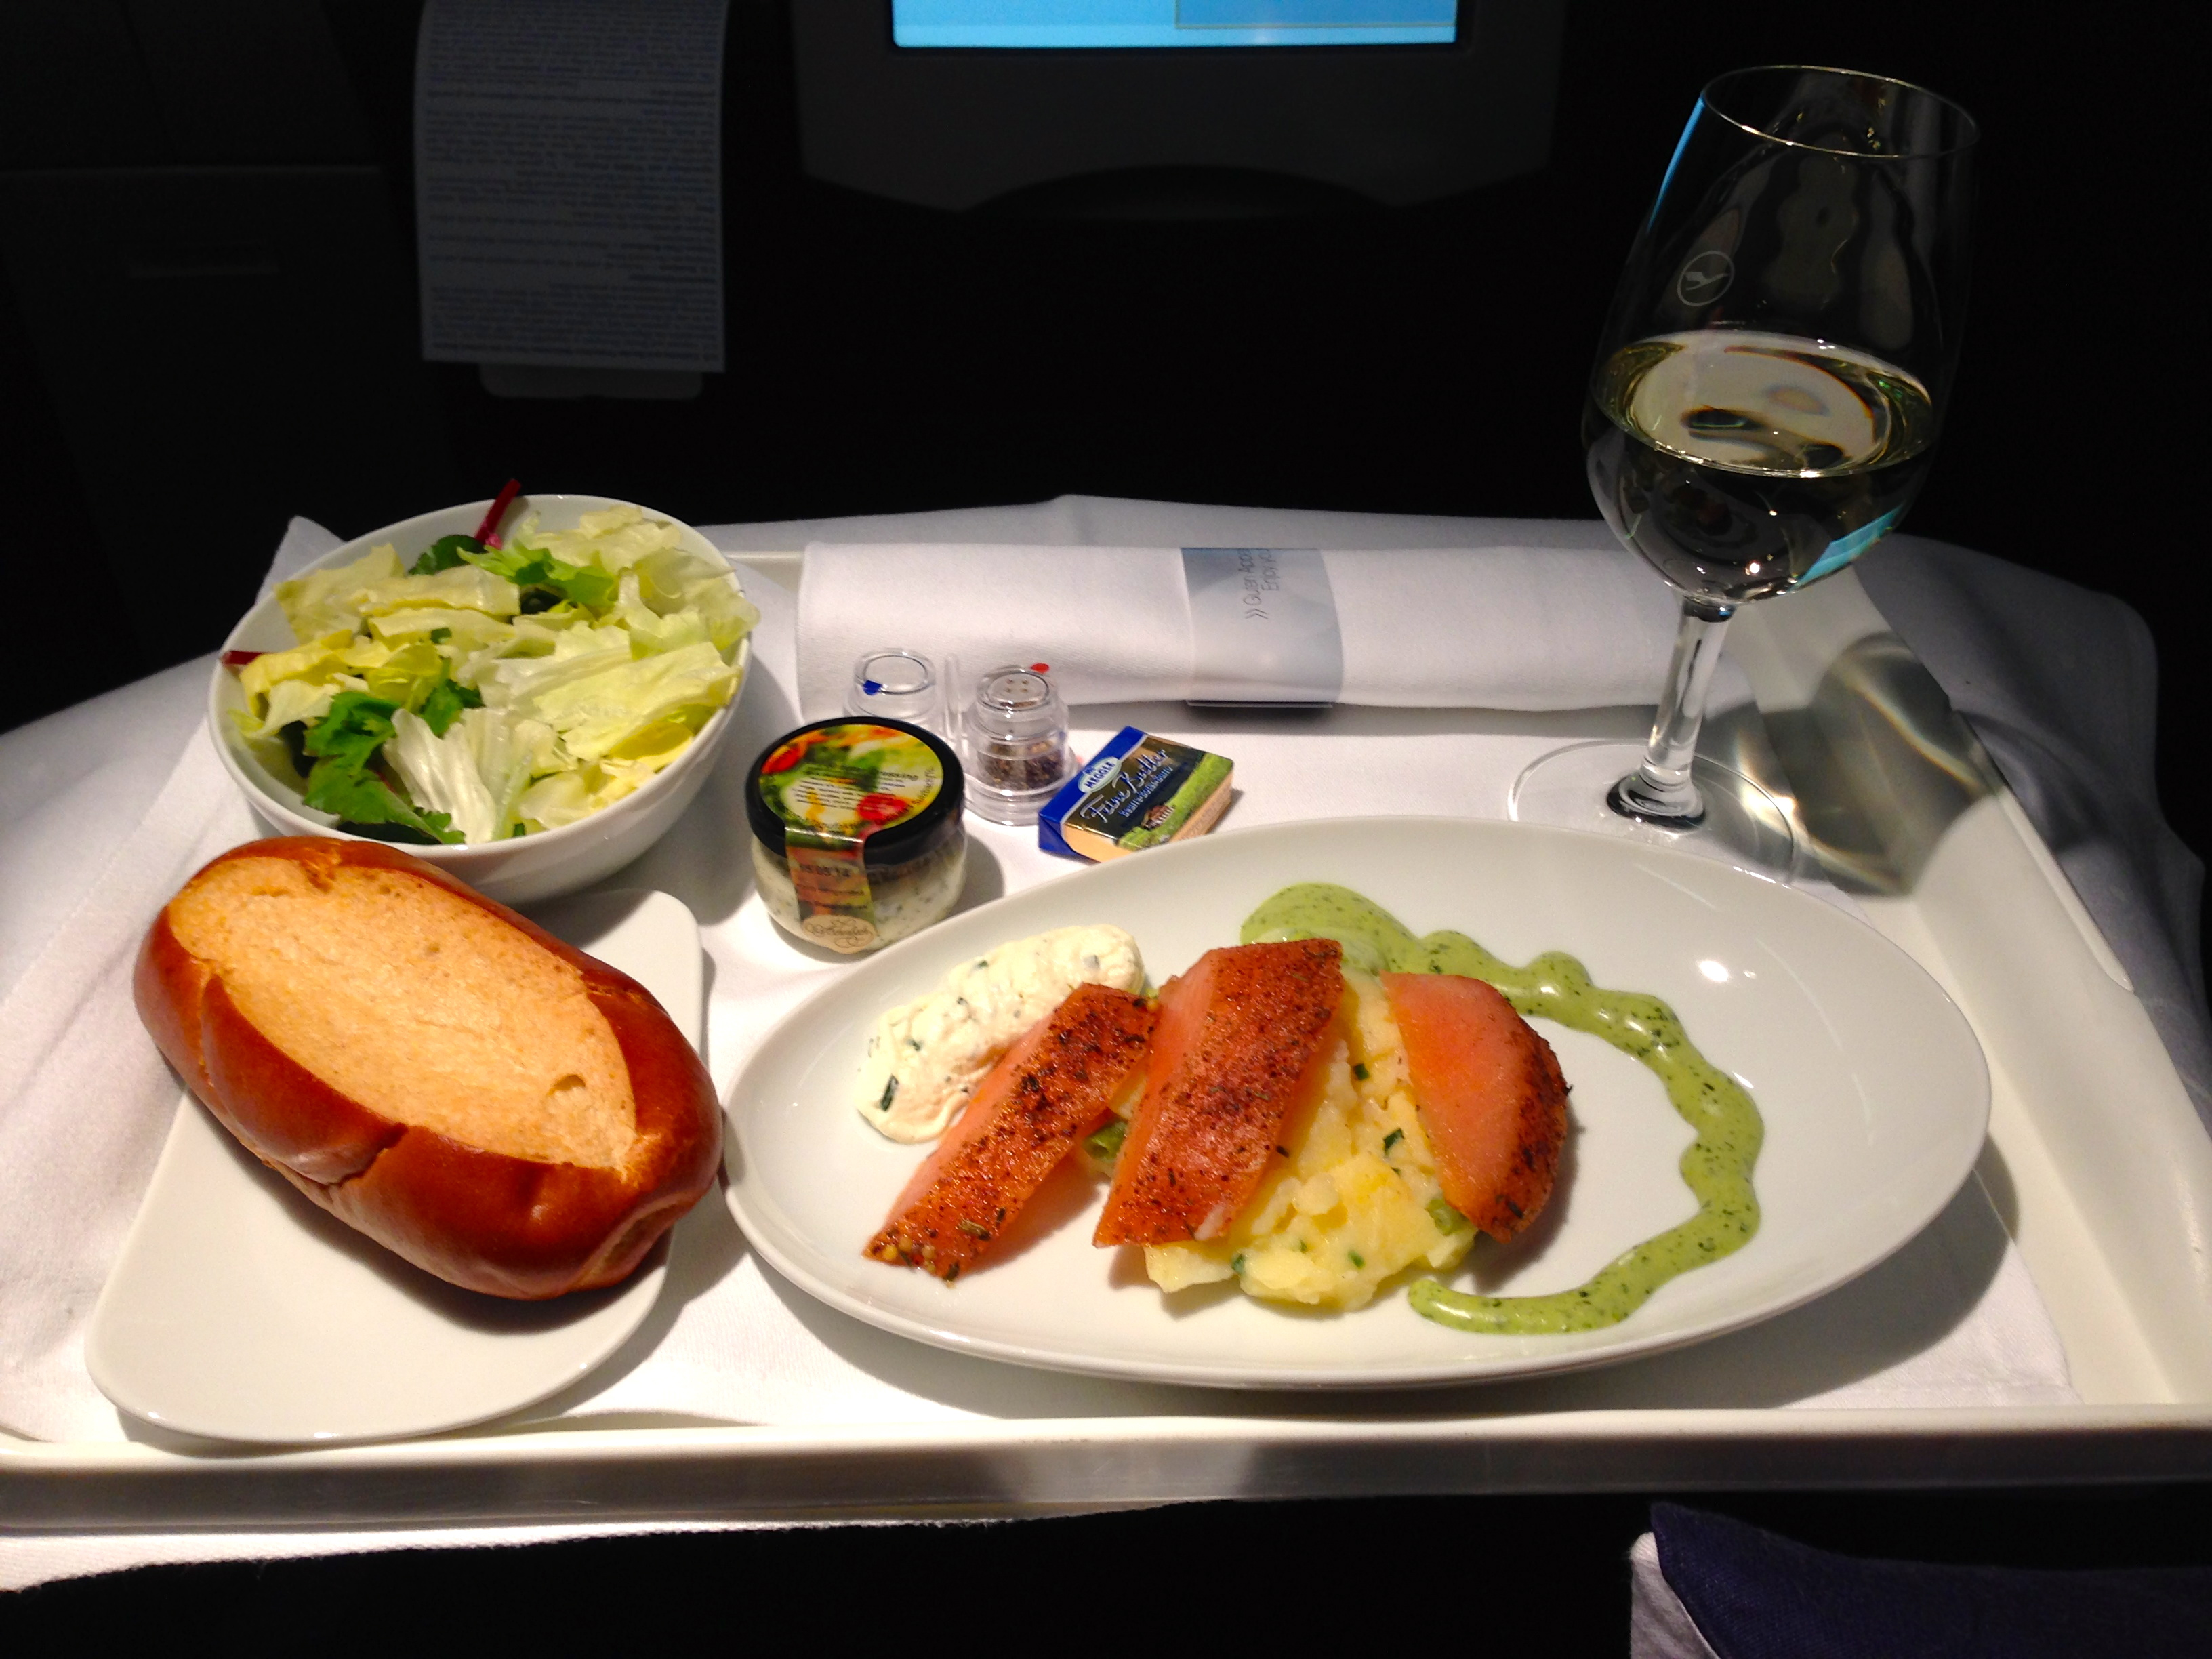 Lufthansa A340-300 Business Class Salad and Appetizer Munich to Chicago